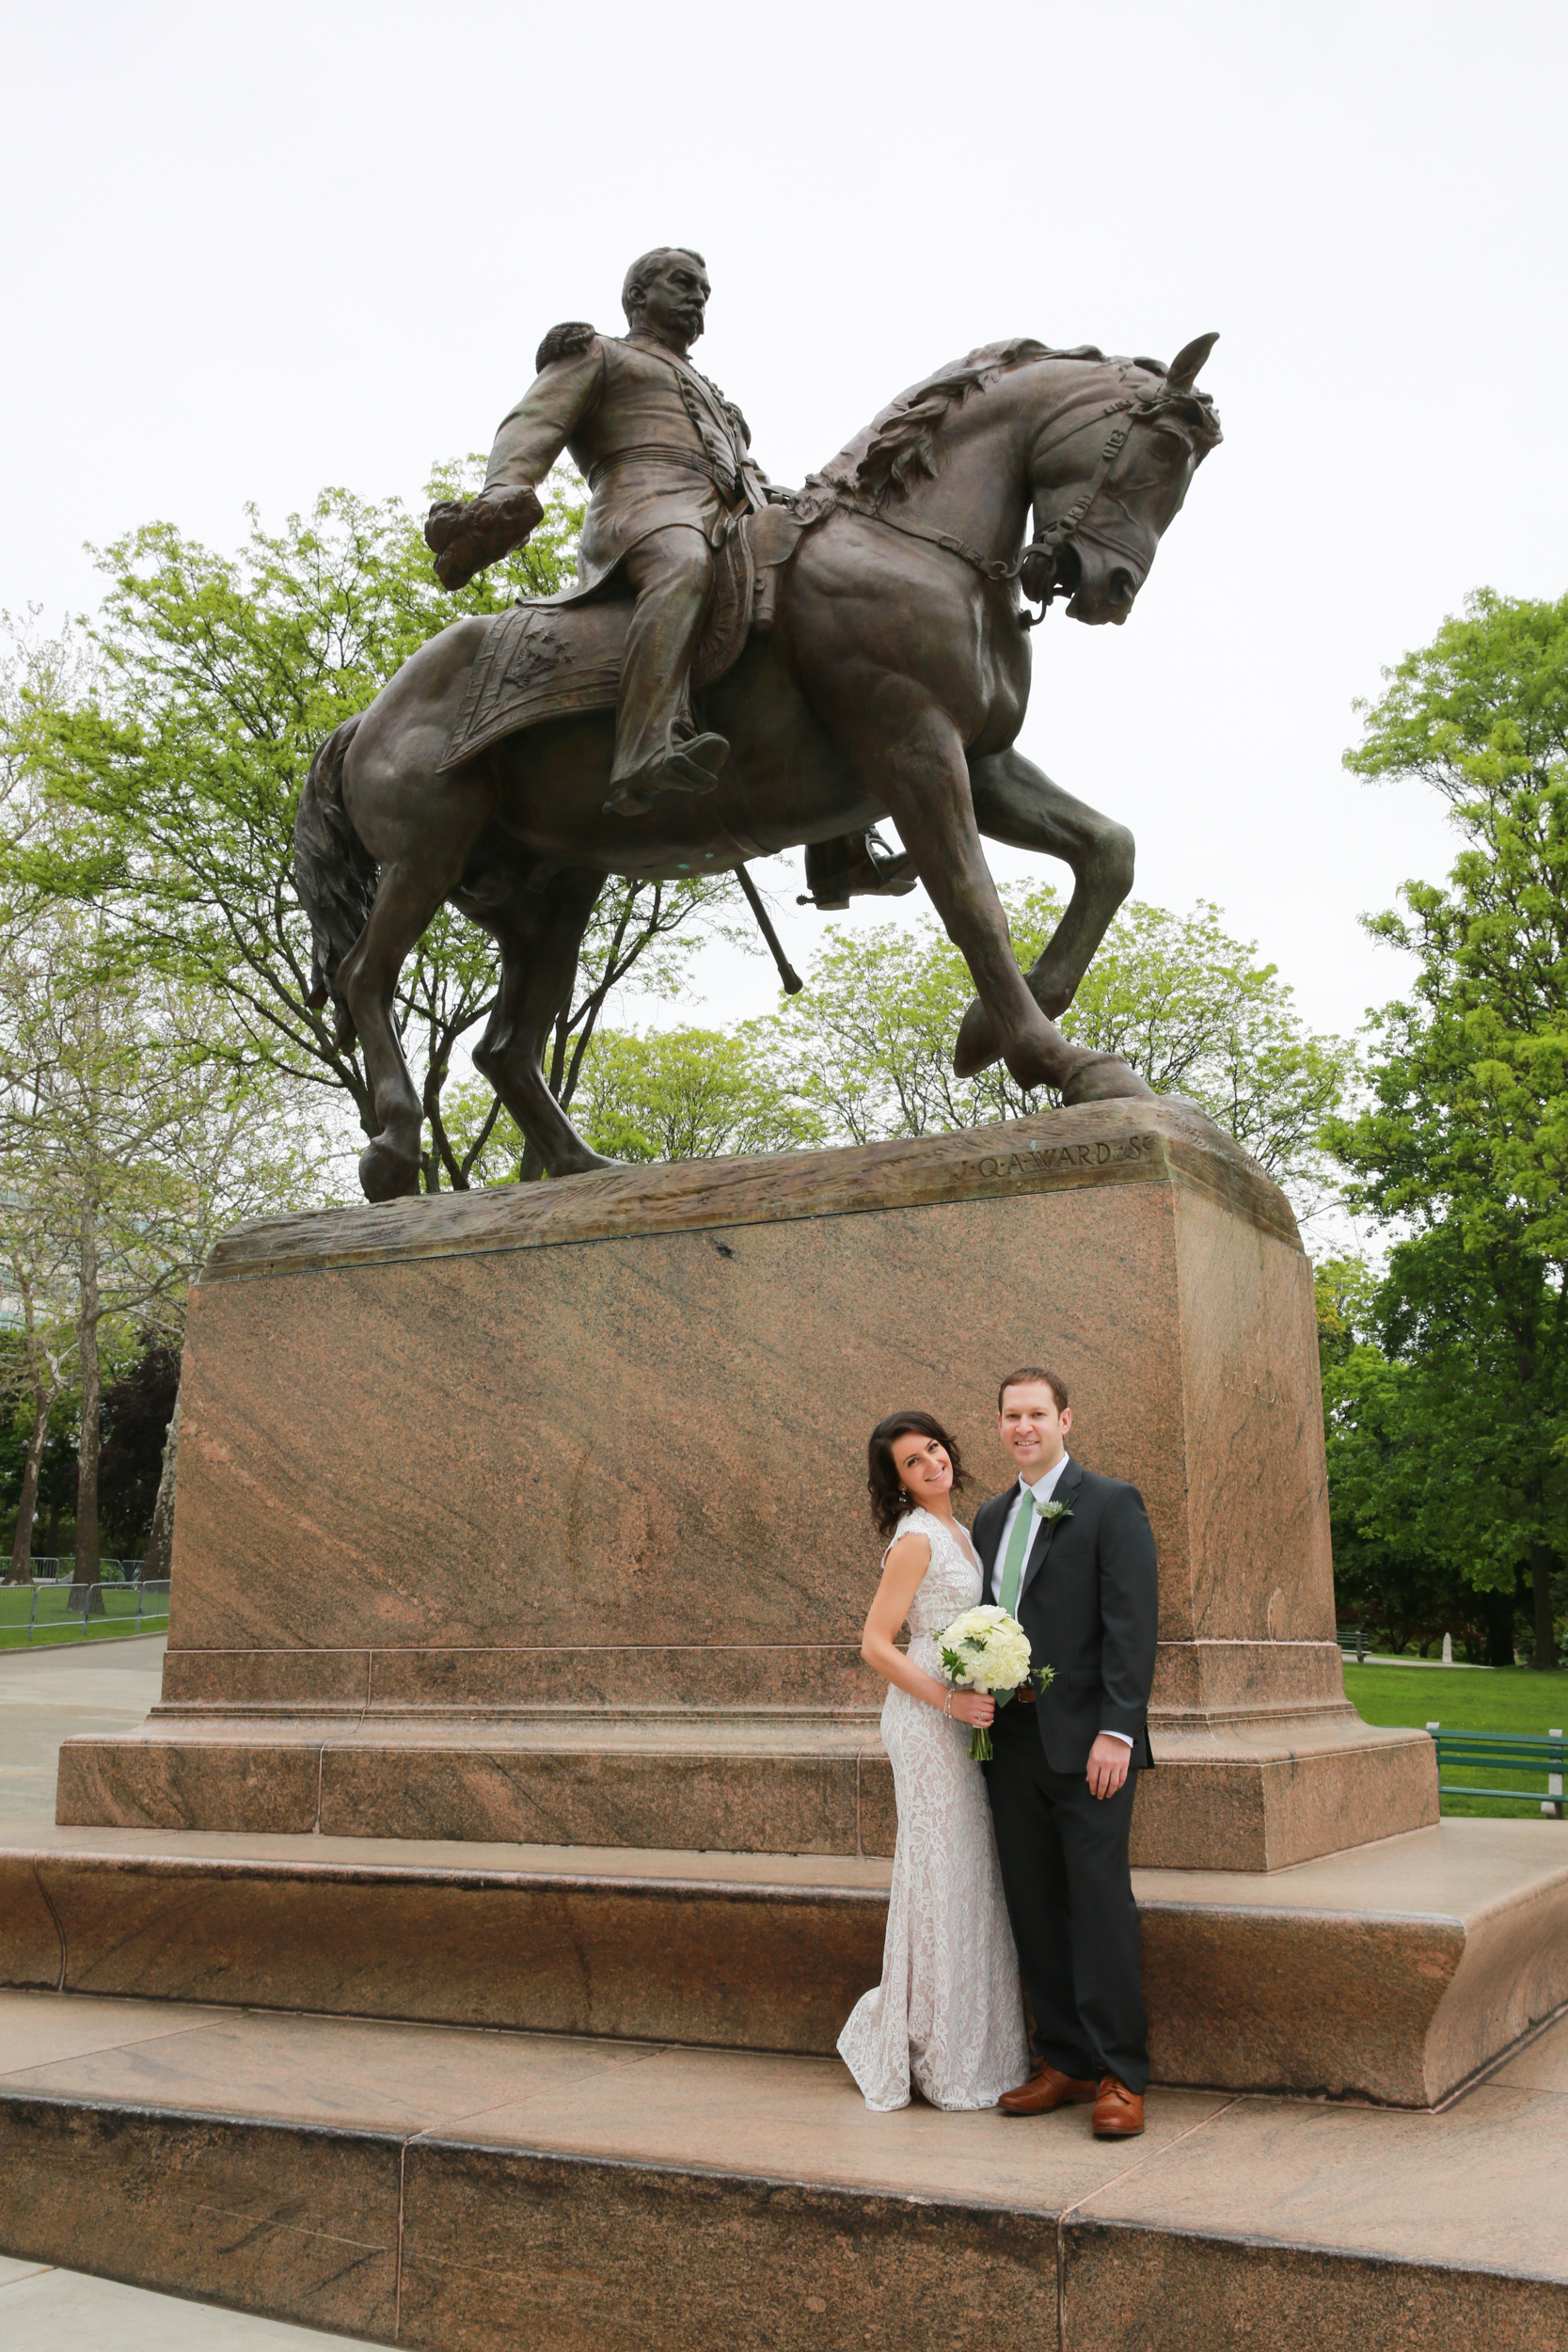 Wedding Portrait of bride and groom in Albany, NY by Aperture Photography